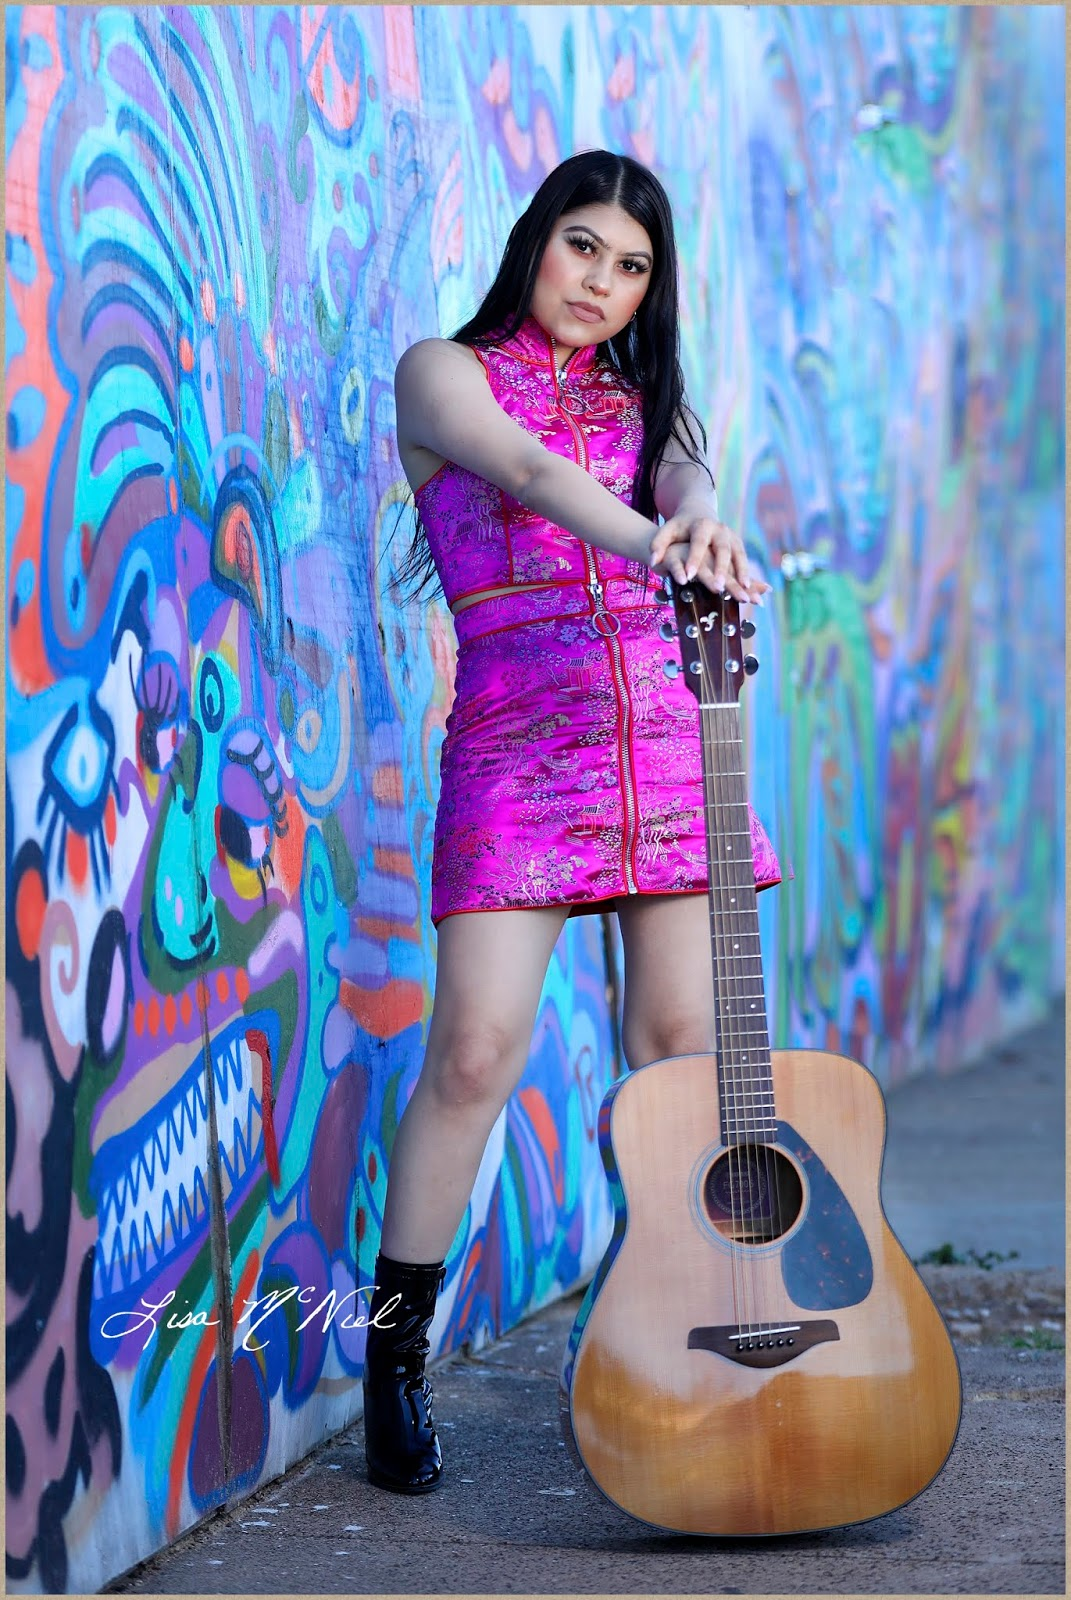 asian girl in pink dress with guitar by colorful graffiti wall